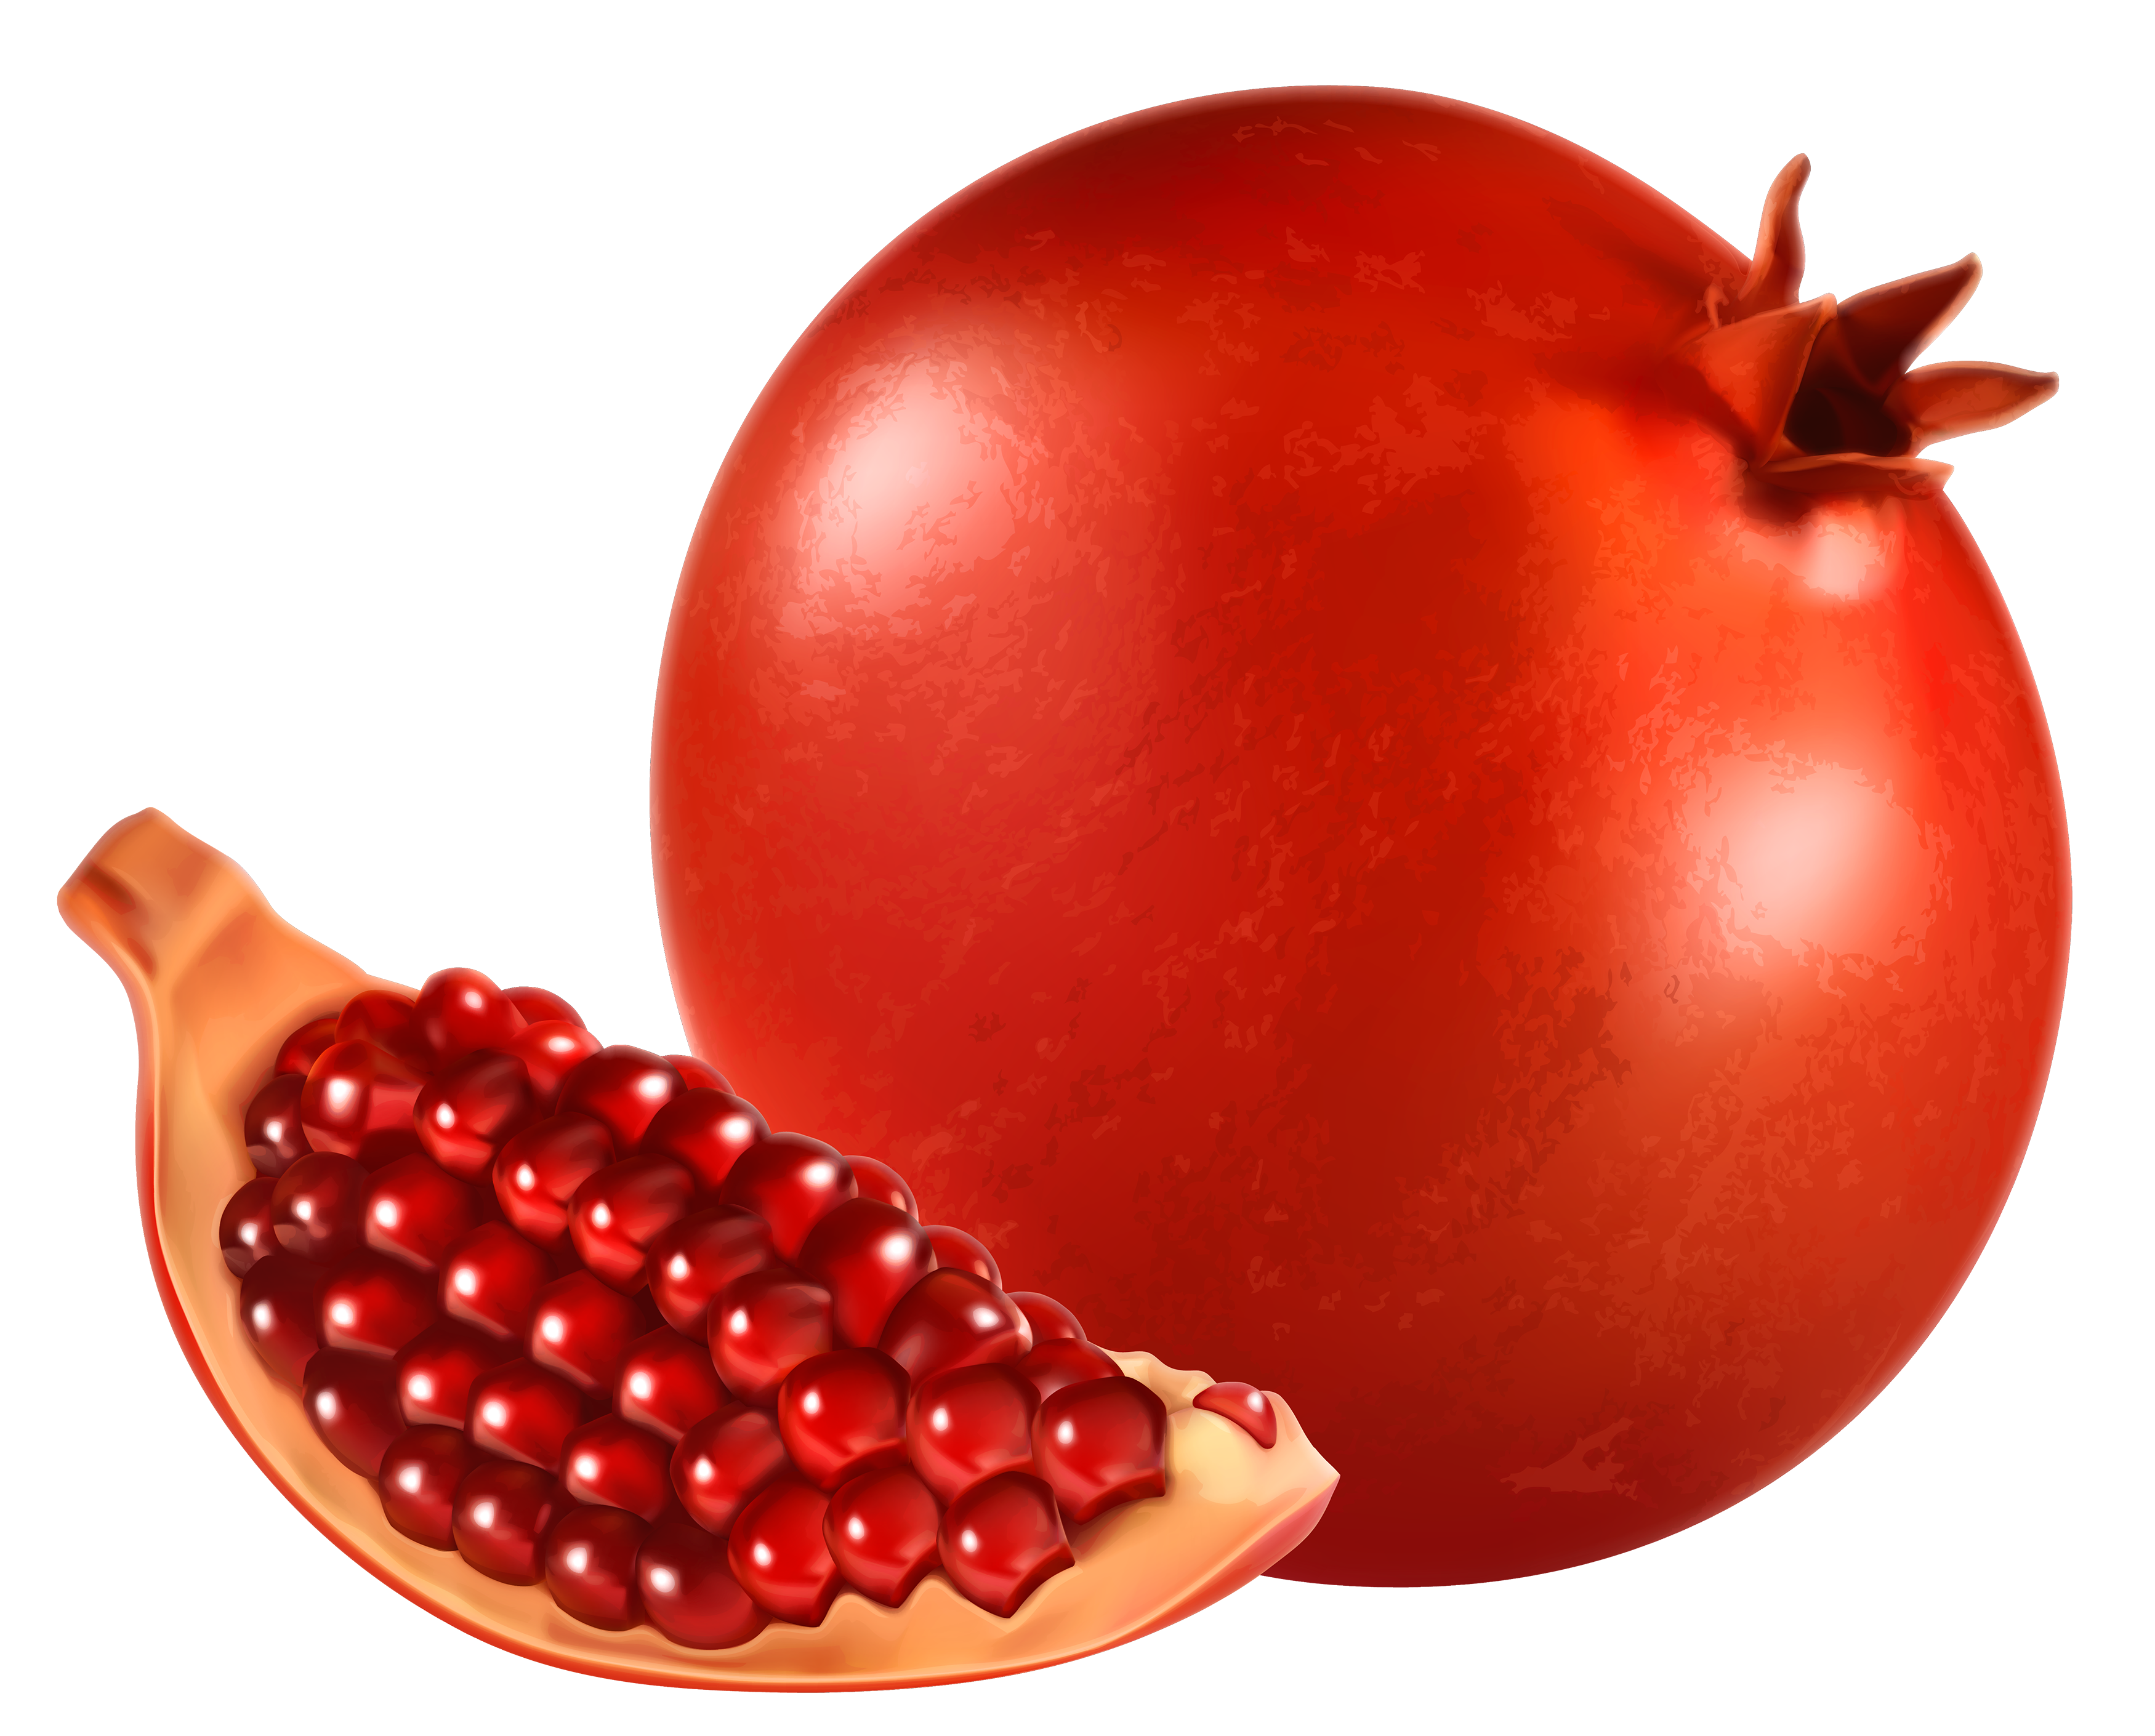 Pomegranate tree clipart banner free download Pomegranate PNG Clipart - Best WEB Clipart banner free download